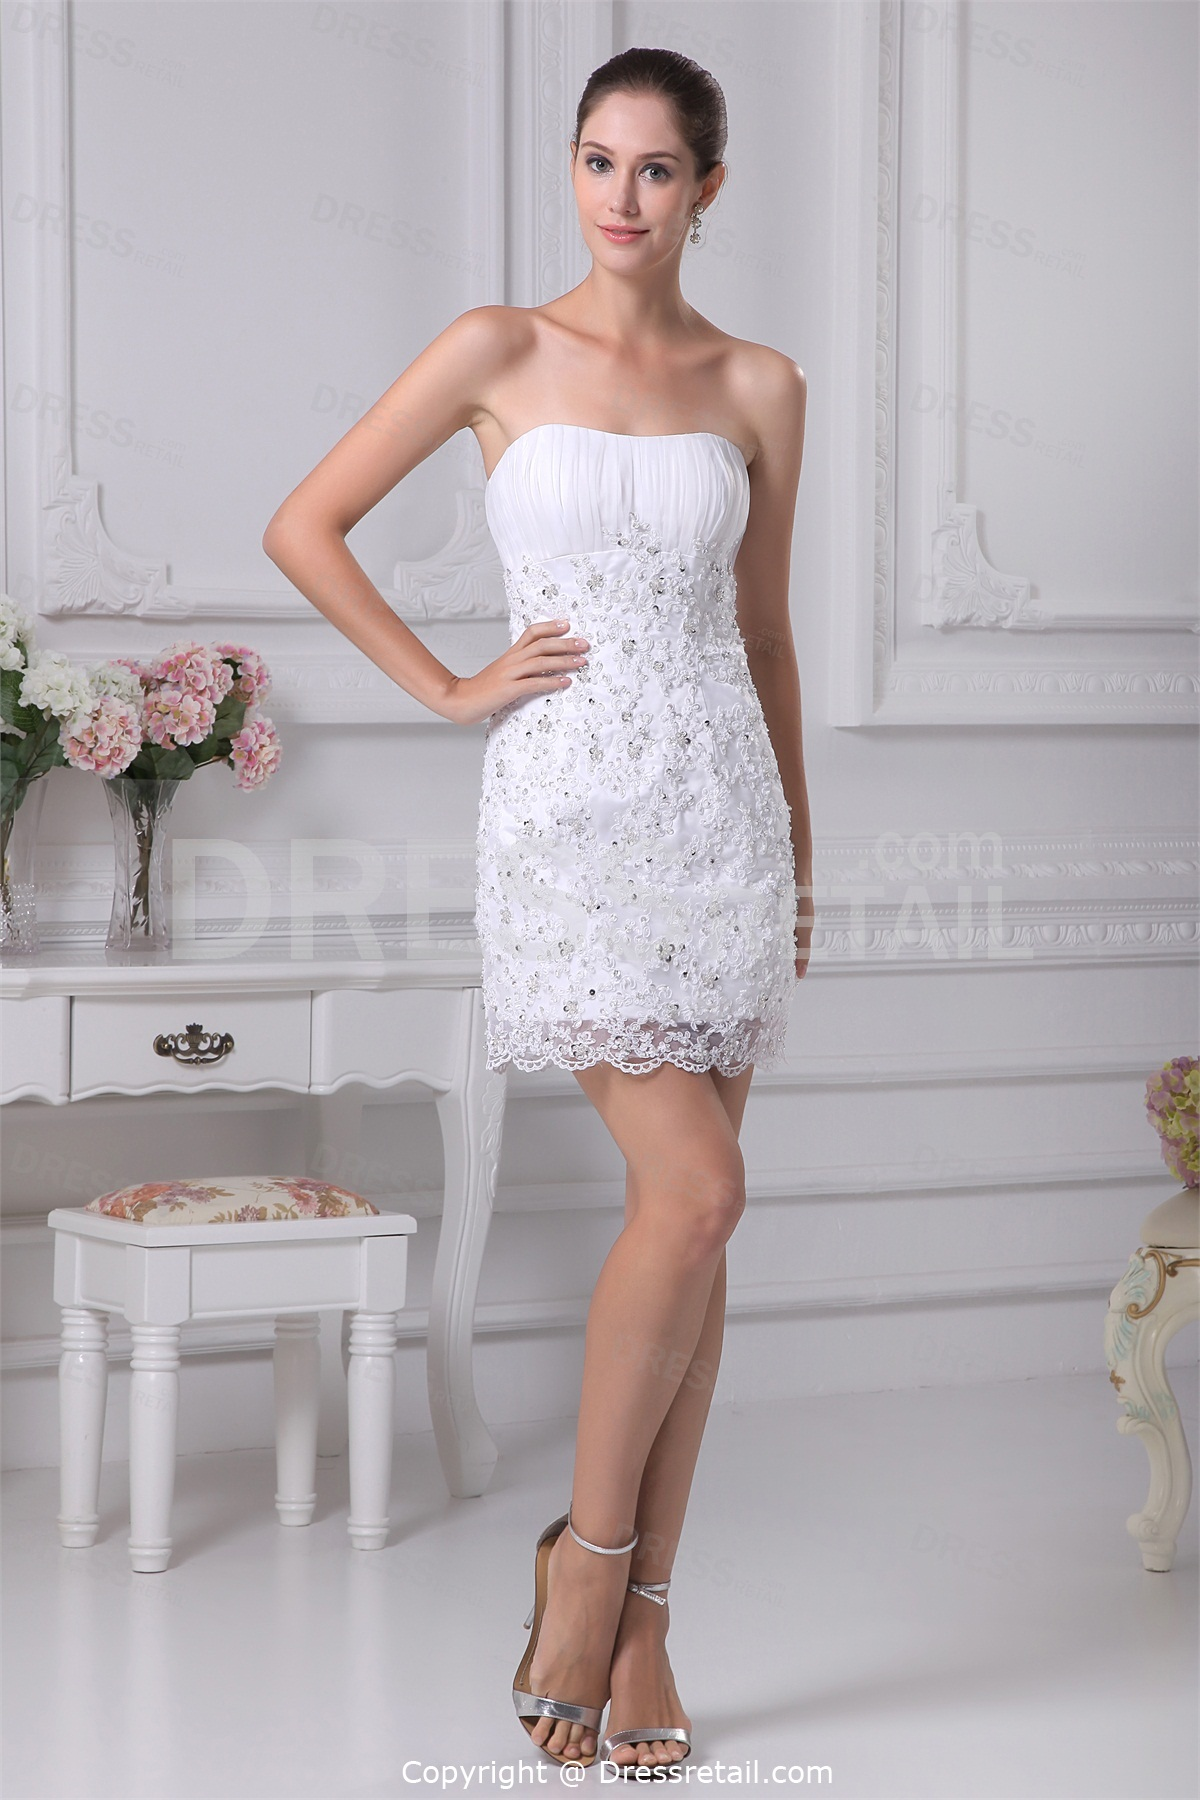 lace summer wedding dresses classical and fashionable dresses for summer wedding lace summer wedding dresses in short style